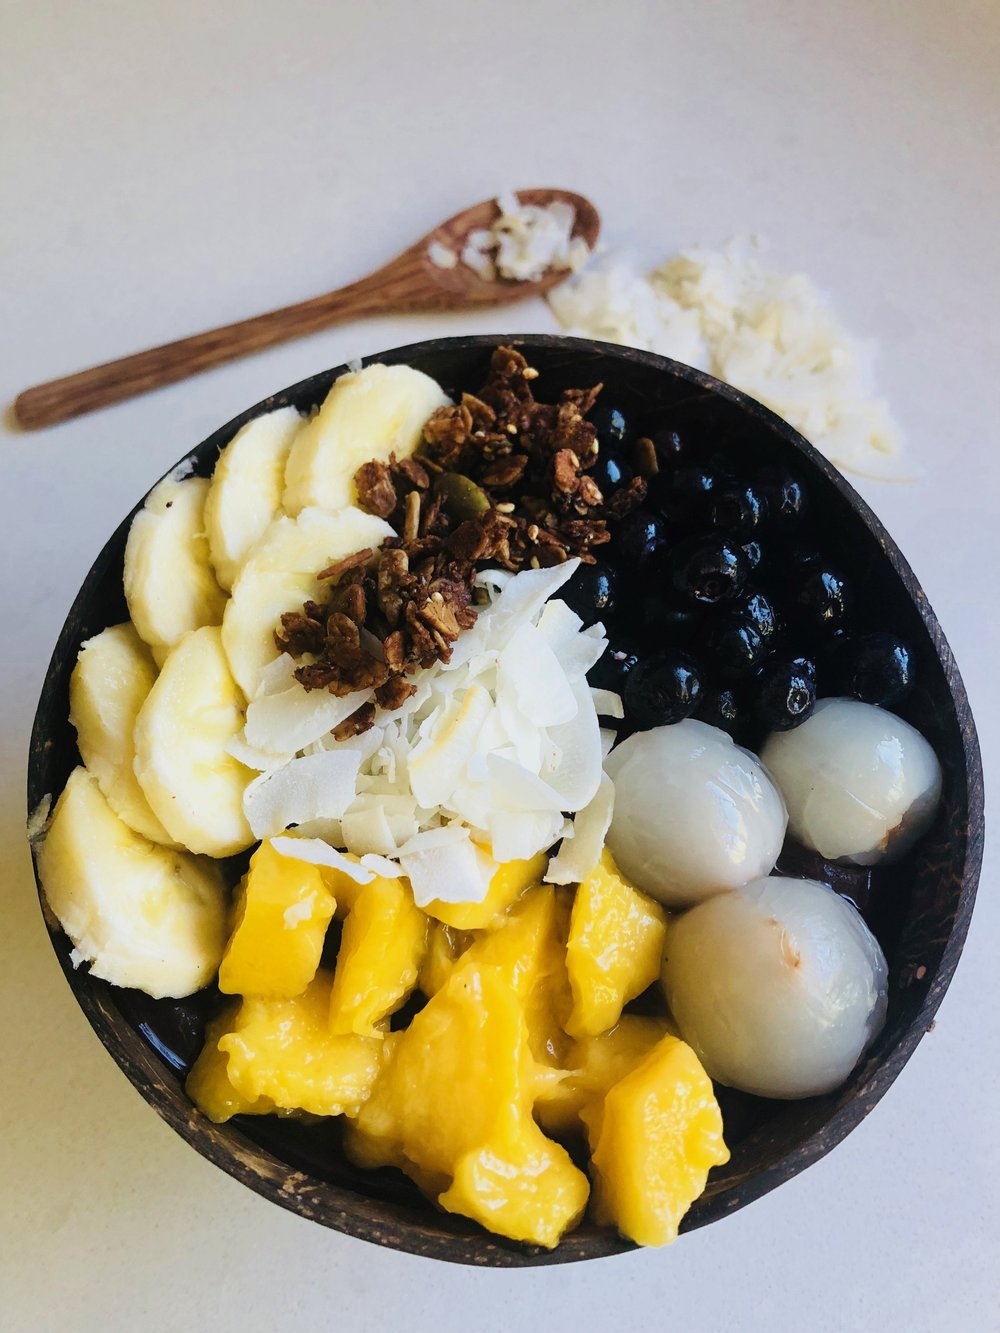 Oahu's North Shore Smoothie Bowl